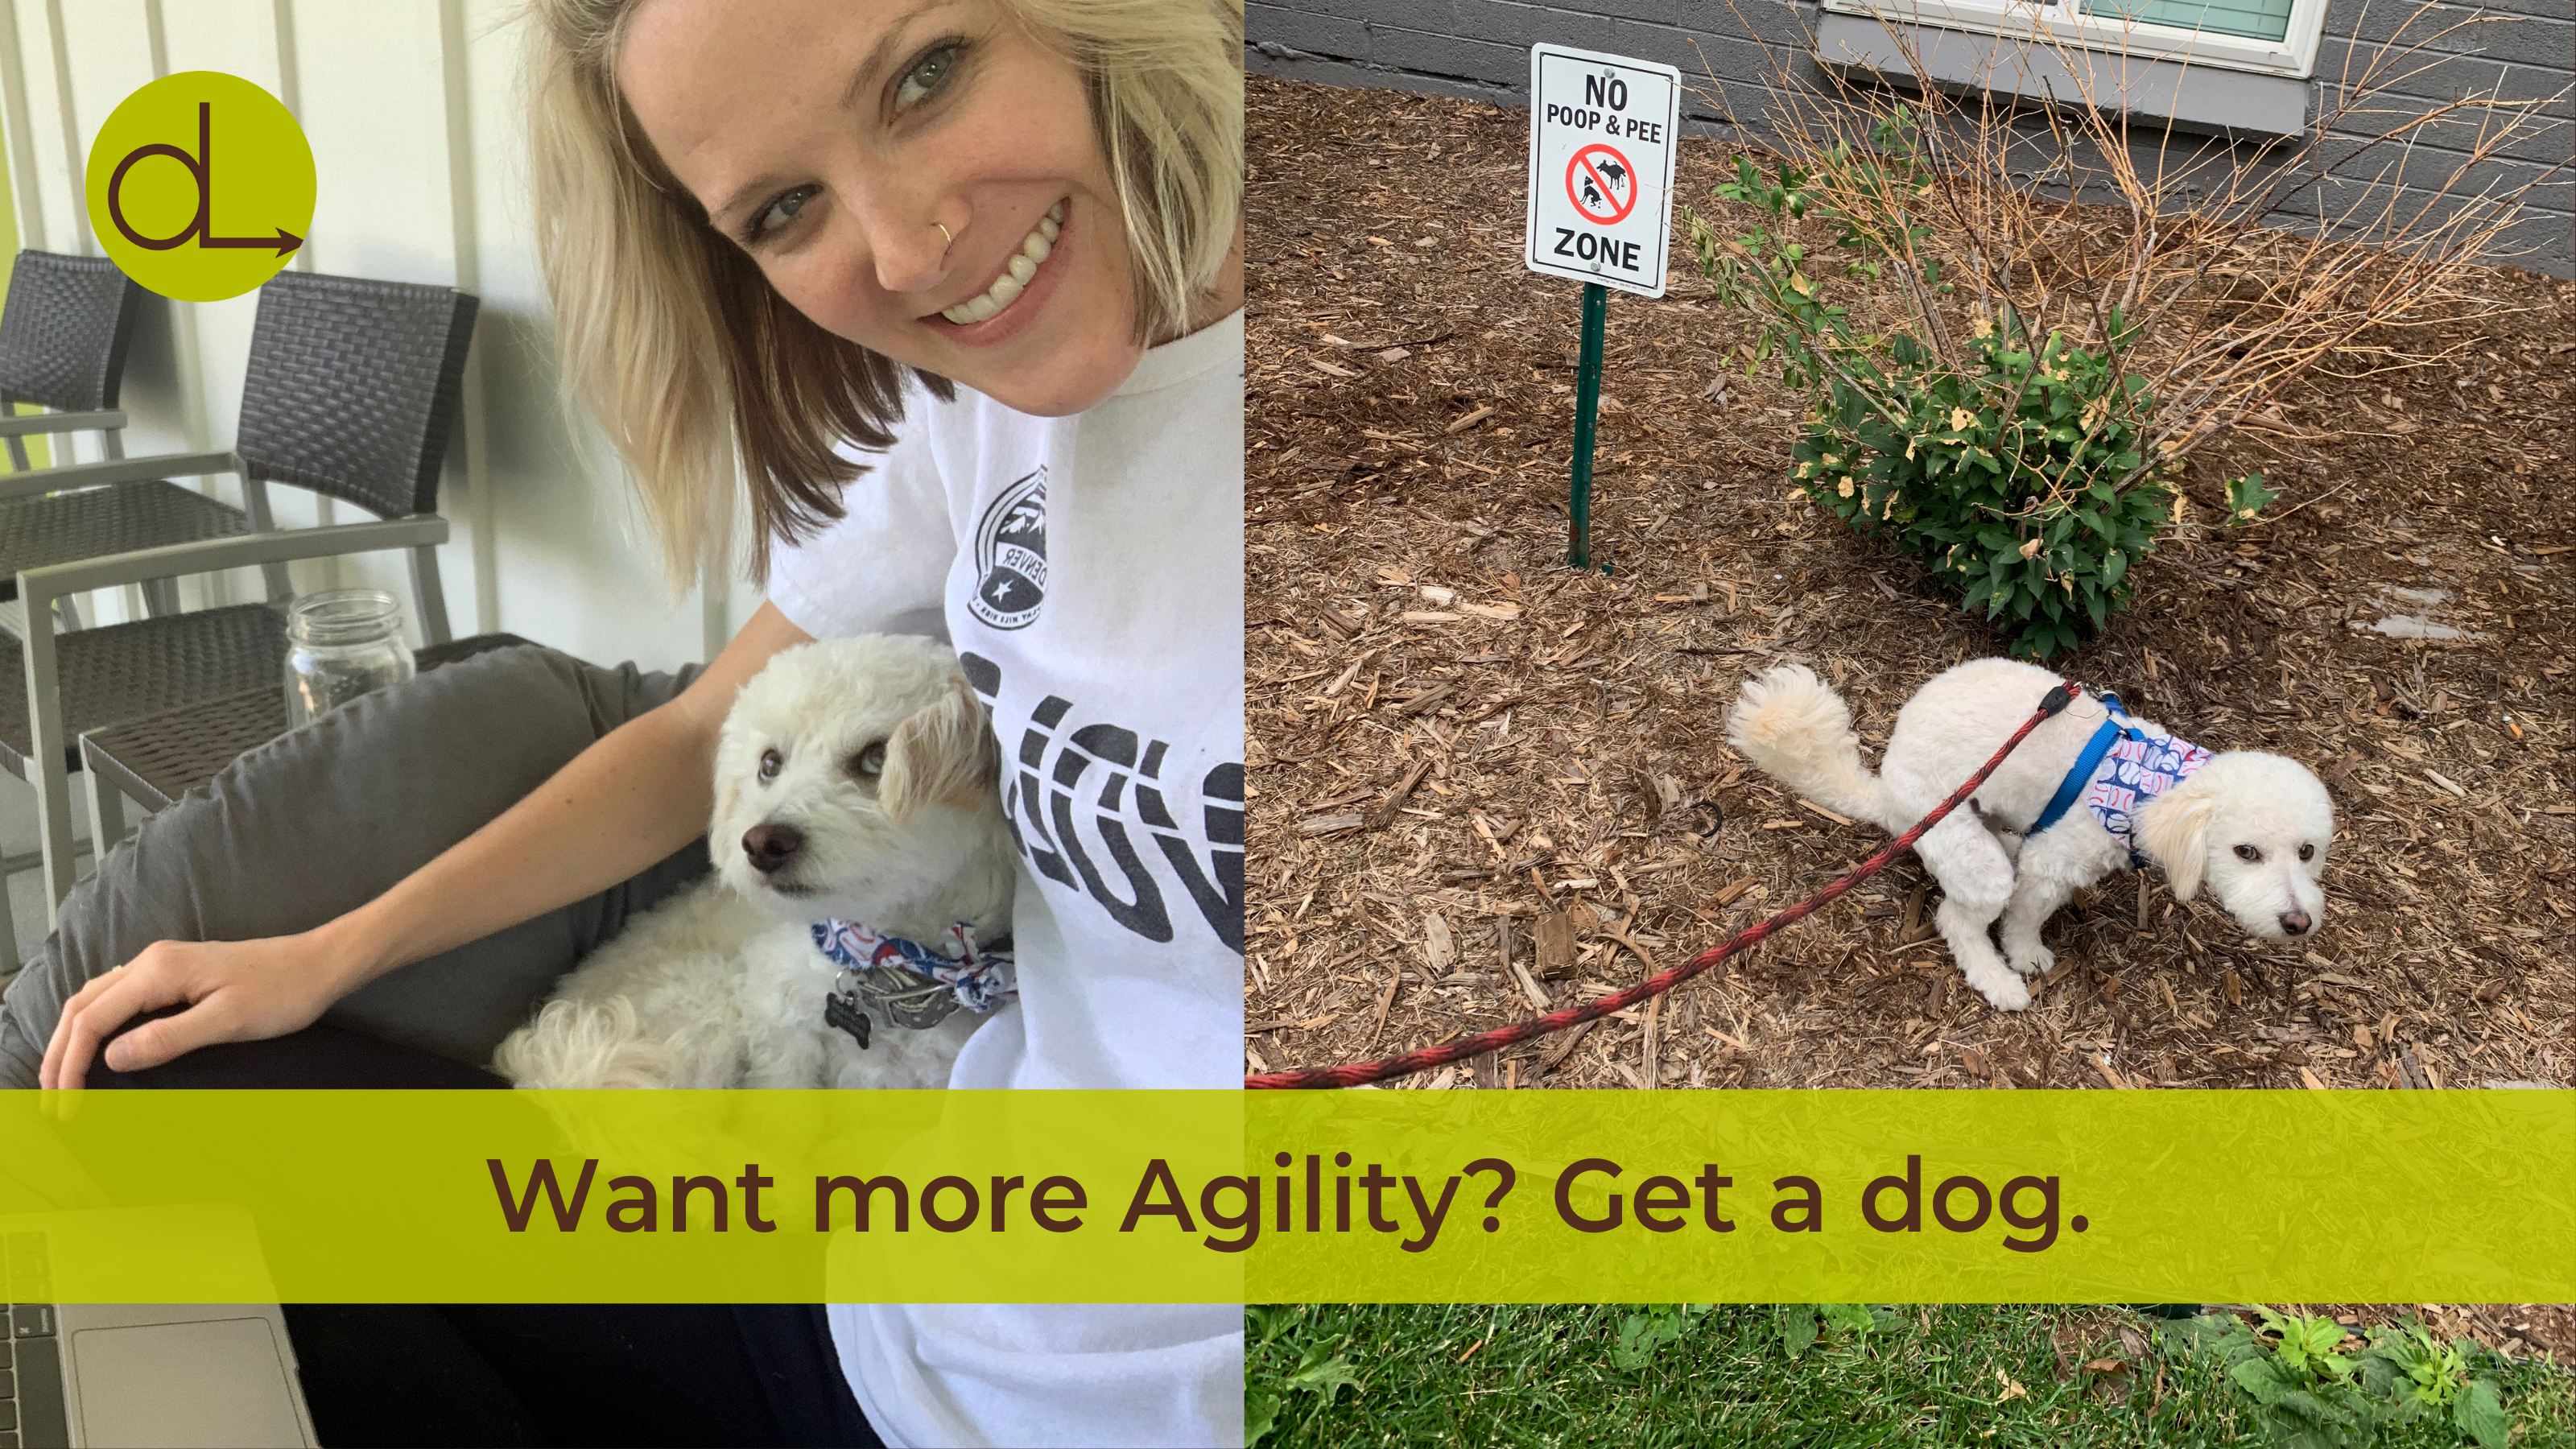 """Two photos side by side. On the left, Kara cuddling her dog, Cosmo. On the right, Cosmo """"doing his business"""" by a sign that warns against it. Across the bottom reads the title """"Want more Agility? Get a dog"""" and the DLCC logo in the upper left corner."""